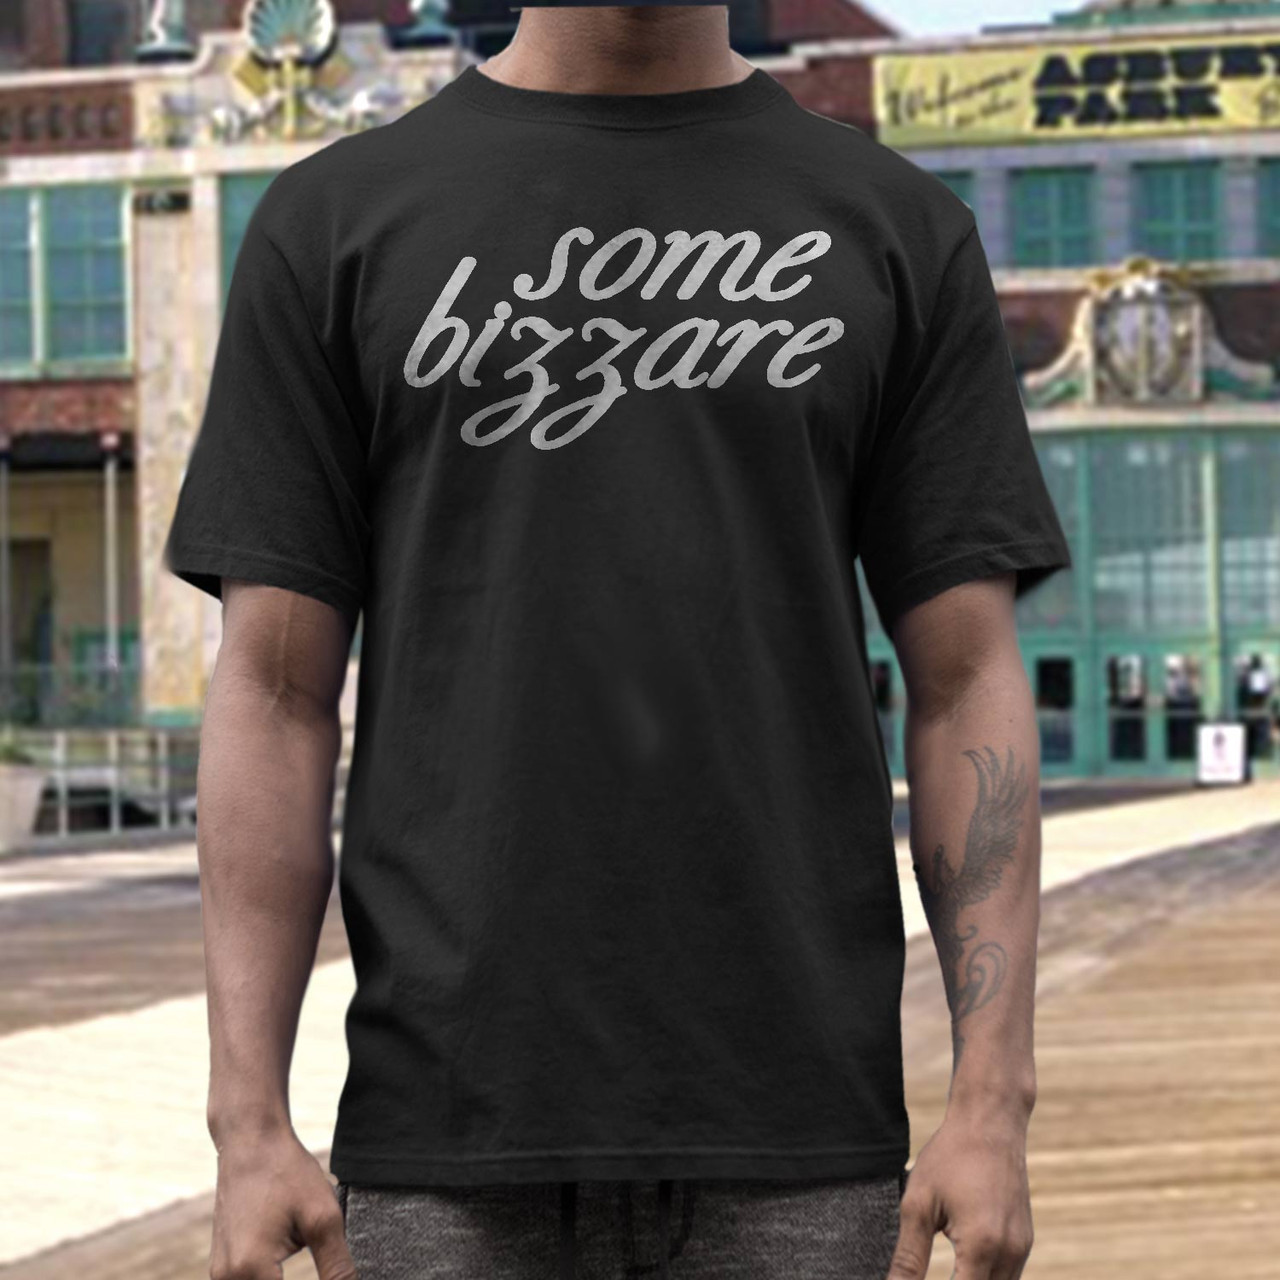 Some bizzare   records label t  shirt